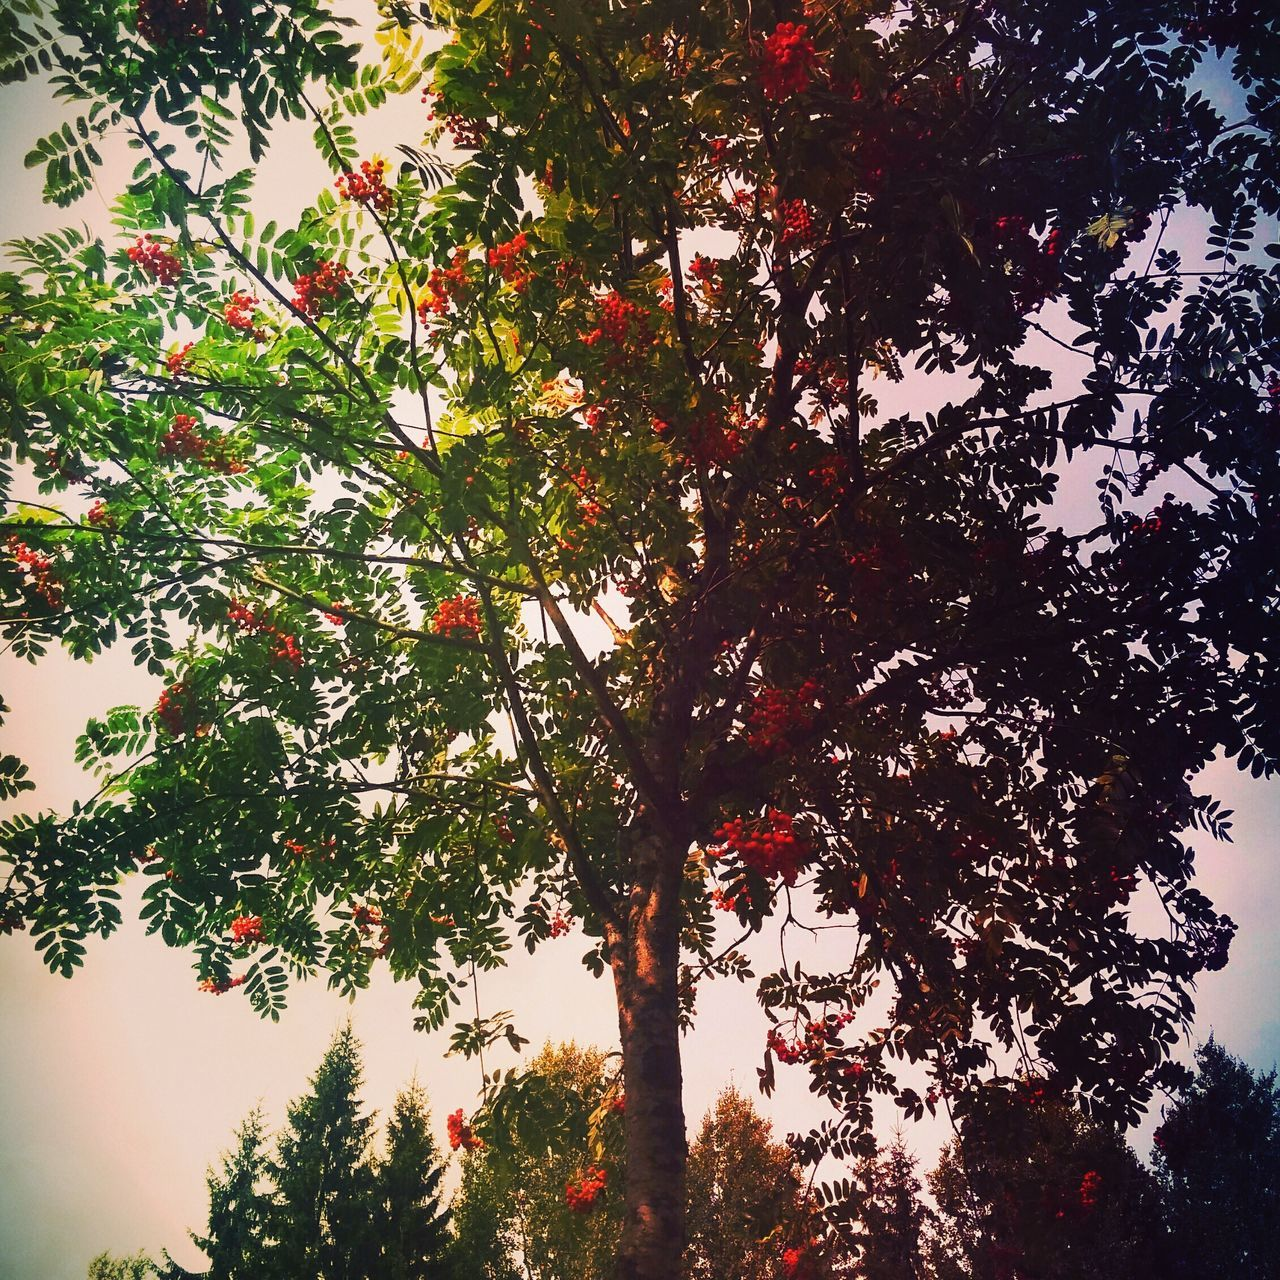 tree, growth, nature, branch, low angle view, beauty in nature, no people, tranquility, red, outdoors, day, foliage, sky